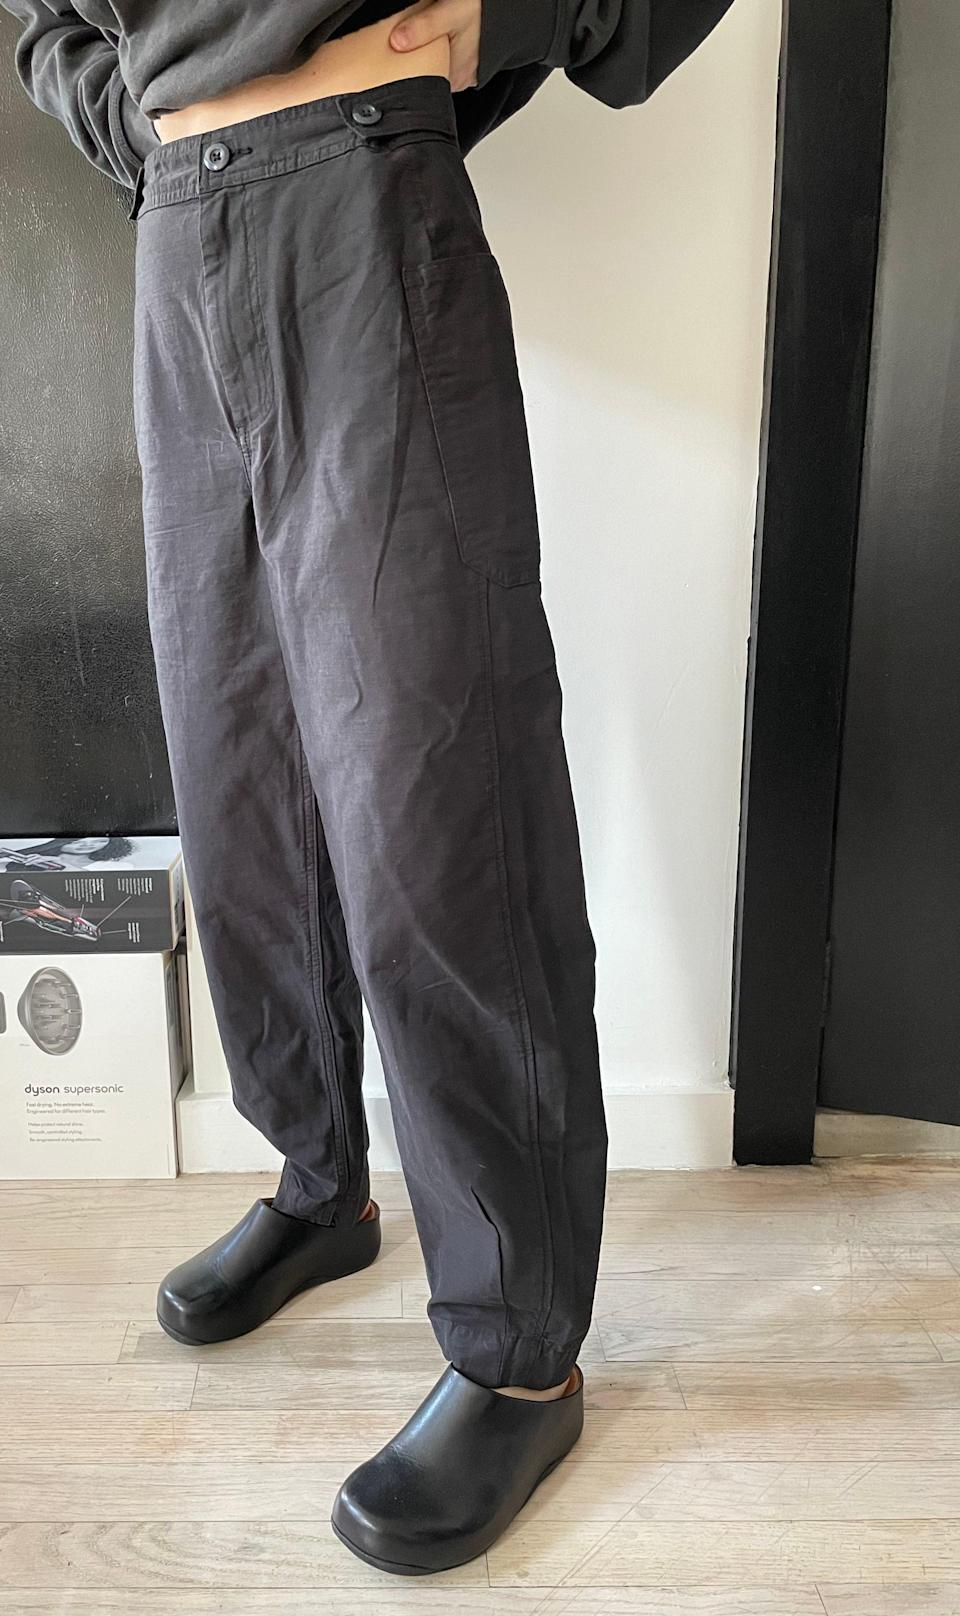 "<h2>Everlane The Fatigue Barrel Pant</h2><br>""I love wearing lightweight pants in the warmer months and I've been looking for a black pair, so when I saw Everlane drop these new barrel pants made of cotton and linen, I picked them right up. I was pleasantly surprised that they fit perfectly, no cuff rolling or hemming required!"" <em>– Kate Spencer, Creative & Updates Editor</em><br><br><em>Shop <strong><a href=""https://www.everlane.com/products/womens-fatigue-barrel-pant-black"" rel=""nofollow noopener"" target=""_blank"" data-ylk=""slk:Everlane"" class=""link rapid-noclick-resp"">Everlane</a></strong></em><br><br><strong>Everlane</strong> The Fatigue Barrel Pant, $, available at <a href=""https://go.skimresources.com/?id=30283X879131&url=https%3A%2F%2Fwww.everlane.com%2Fproducts%2Fwomens-fatigue-barrel-pant-black"" rel=""nofollow noopener"" target=""_blank"" data-ylk=""slk:Everlane"" class=""link rapid-noclick-resp"">Everlane</a>"